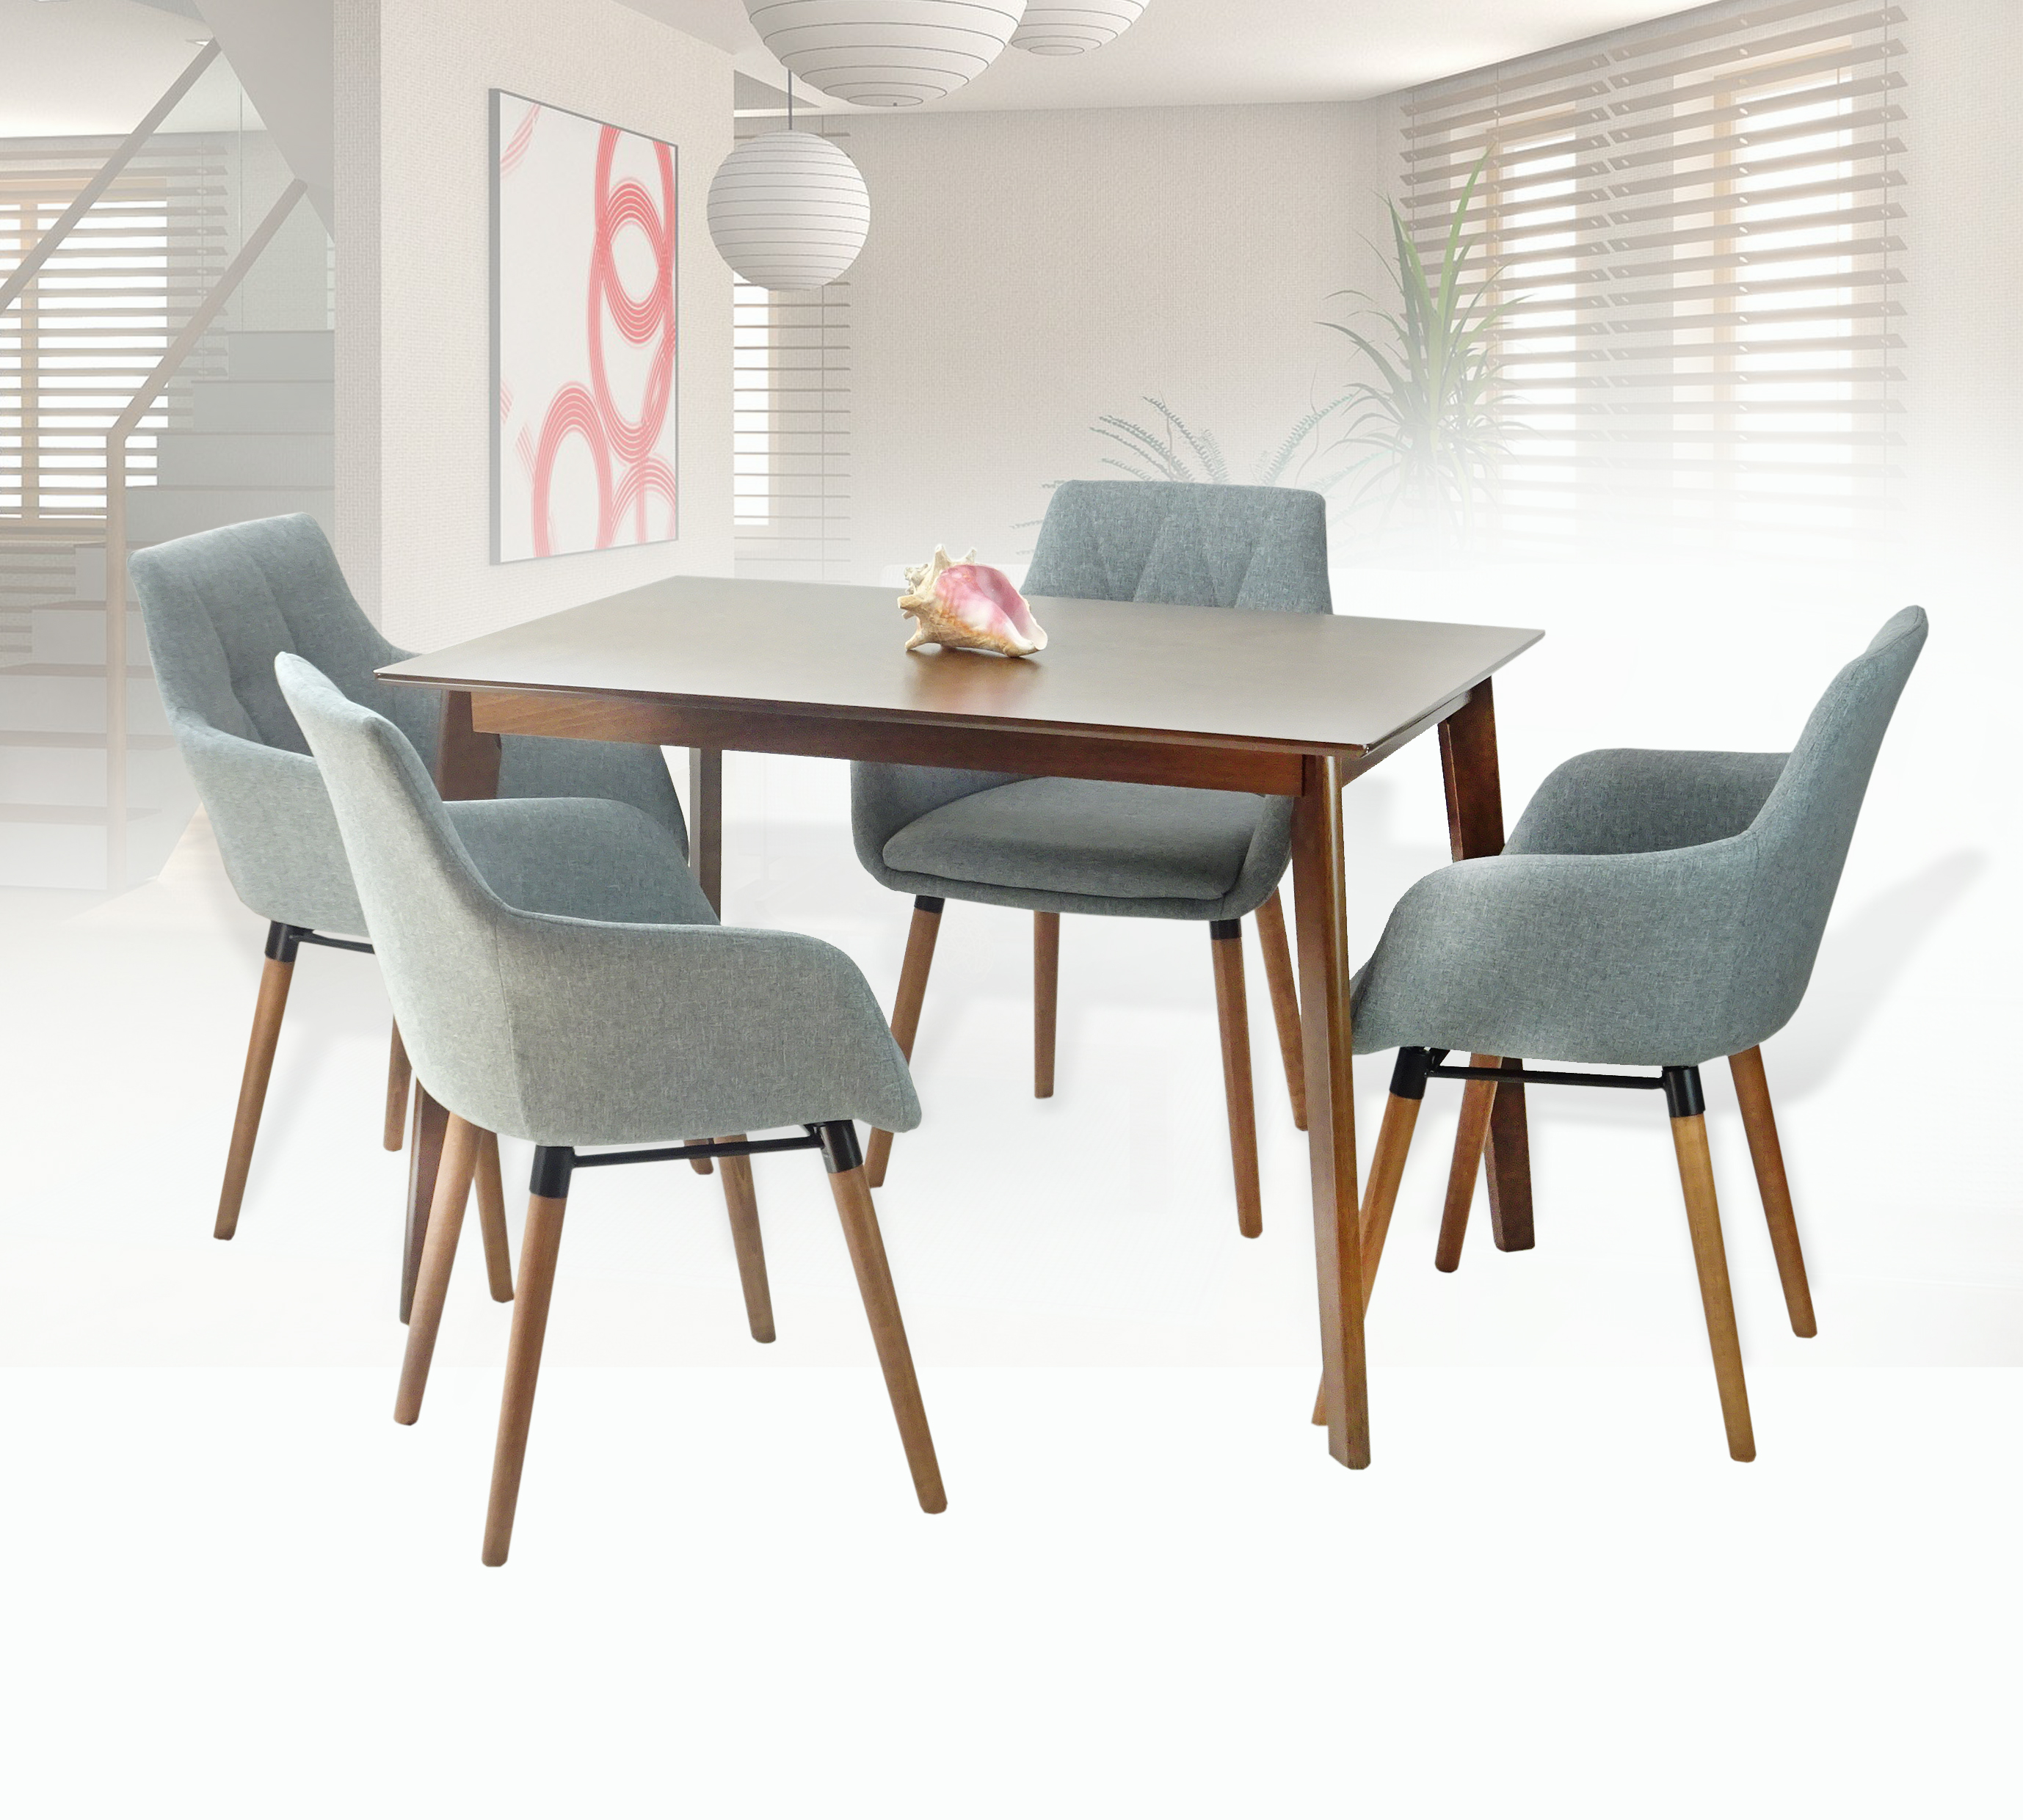 Admirable Dining Kitchen Set Of 5 Rectangular Wooden Brown Table With 4 Alba Armchairs Gray Color Unemploymentrelief Wooden Chair Designs For Living Room Unemploymentrelieforg